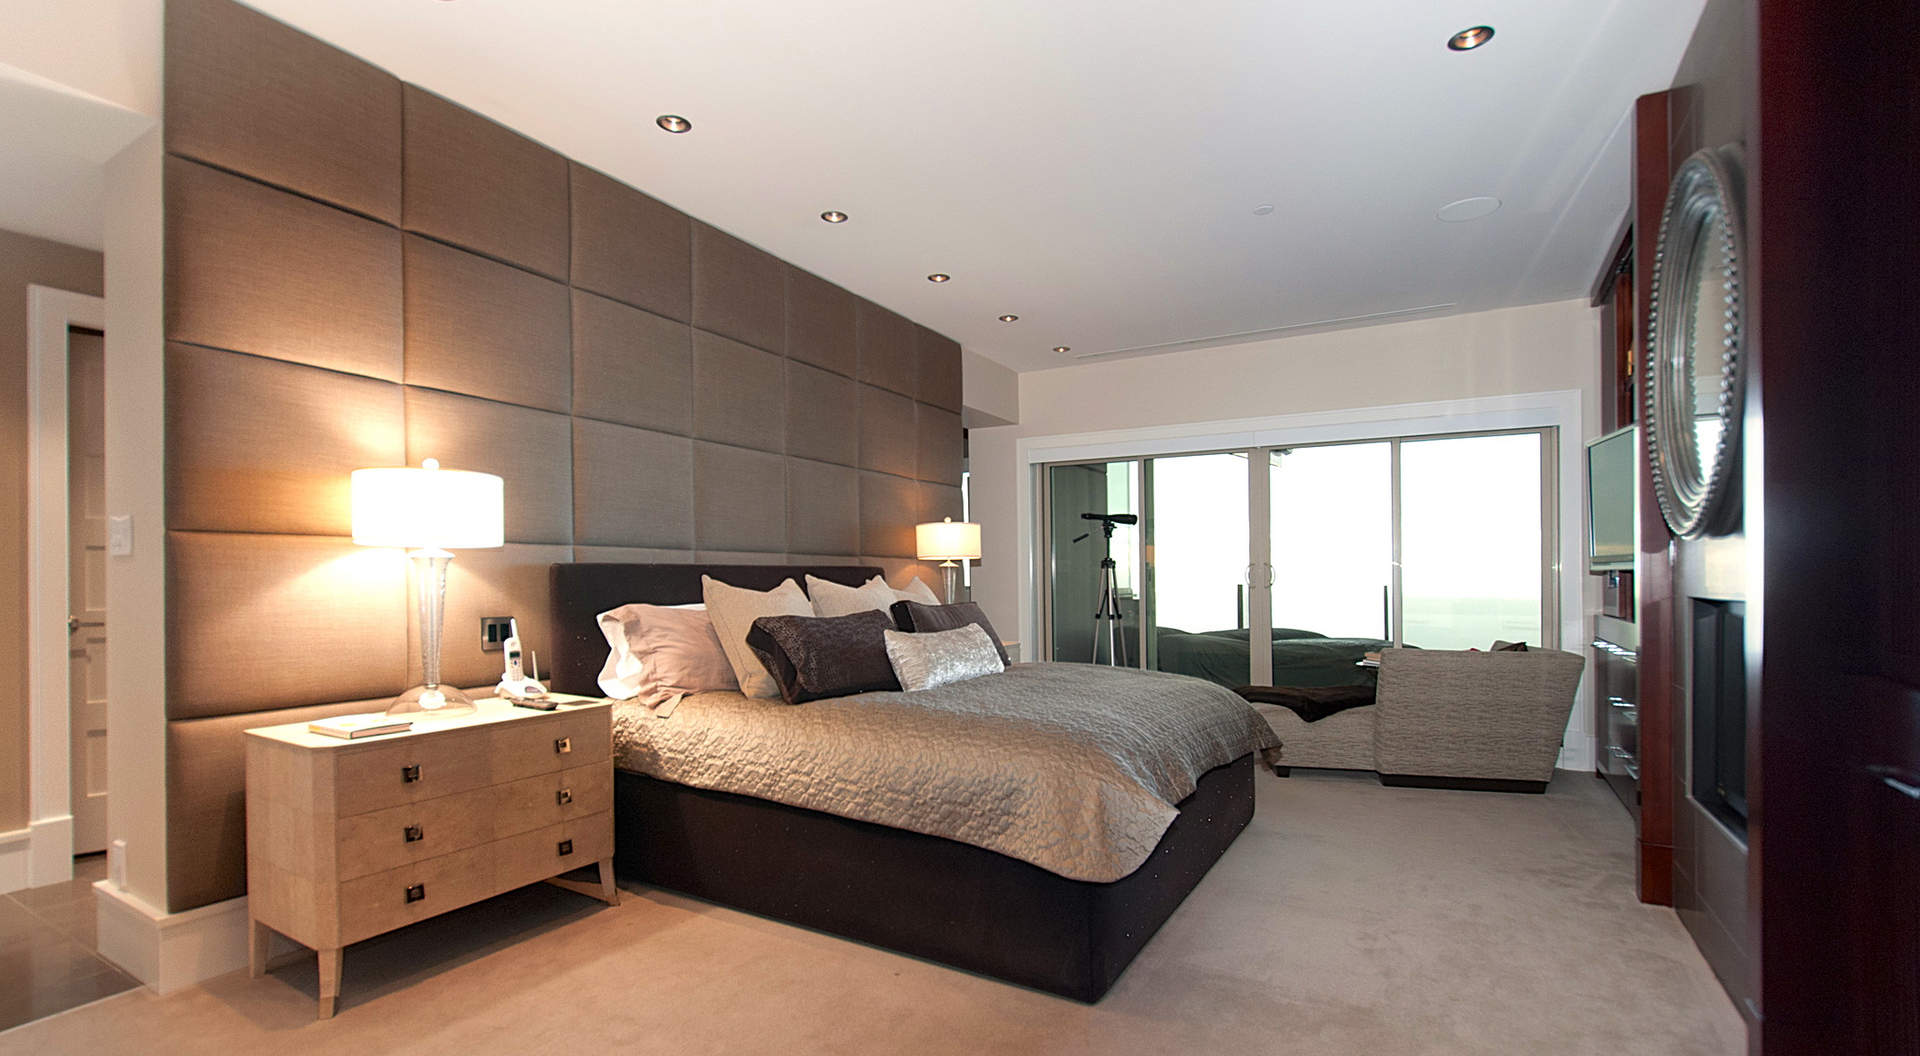 Penthouse master bedroom interior design ideas for Master bedroom images